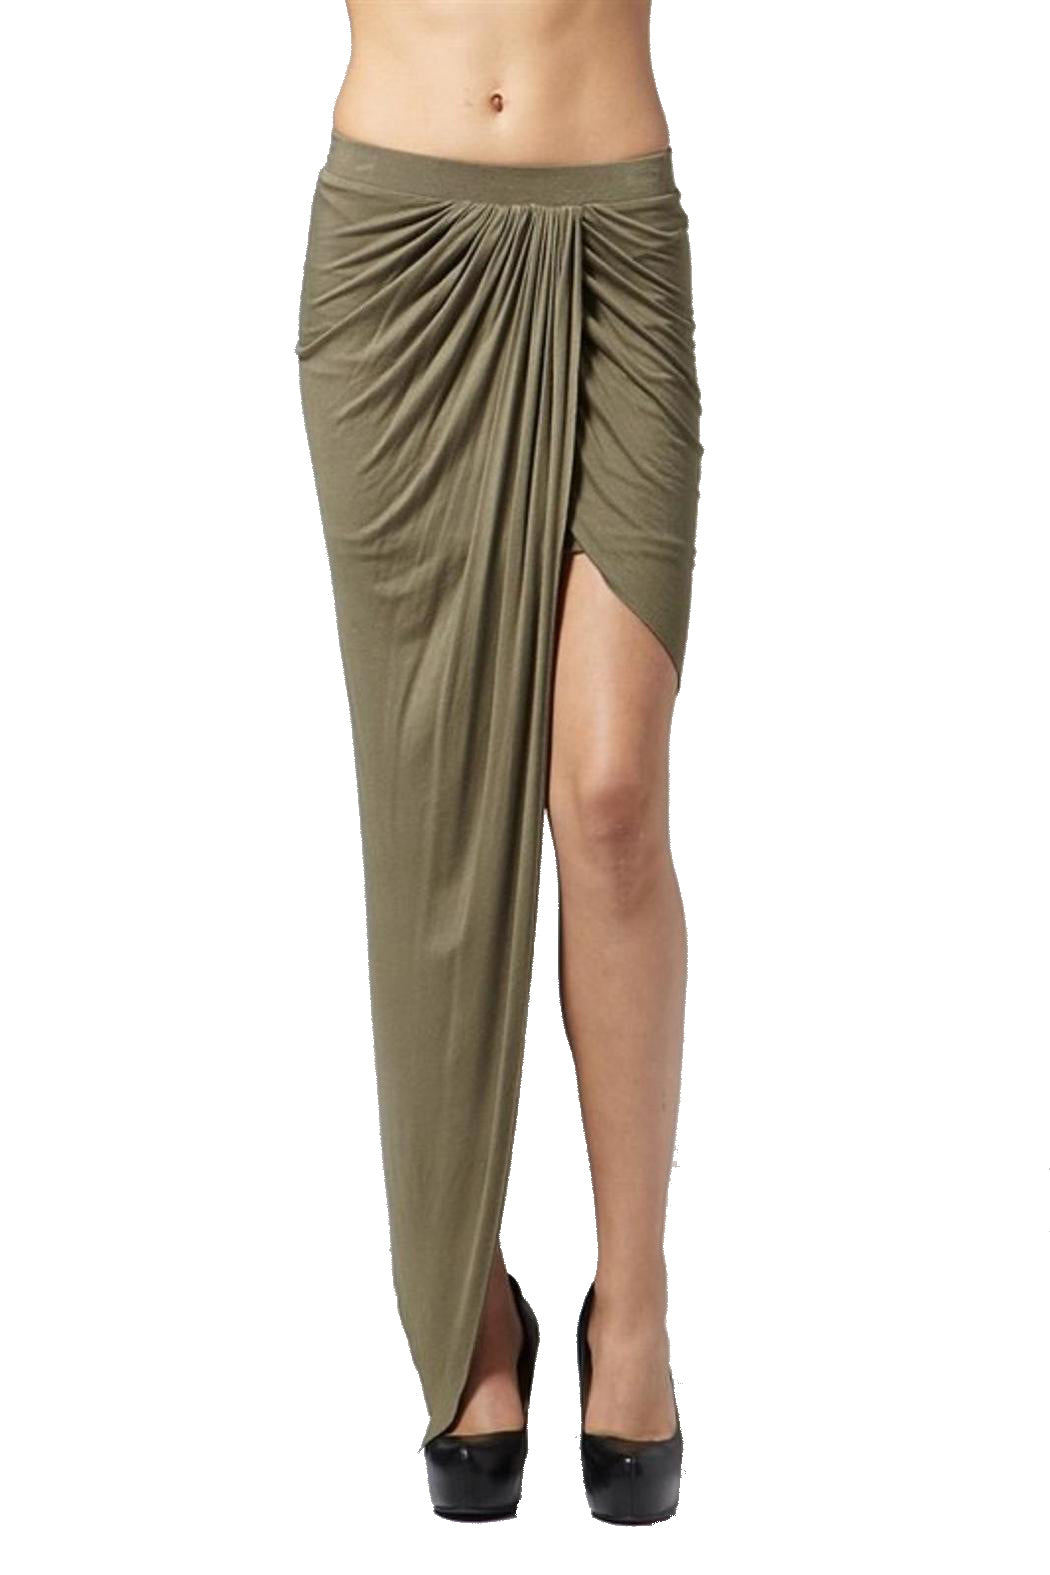 Hommage Twisted Hi Low Olive Skirt - Cimiche